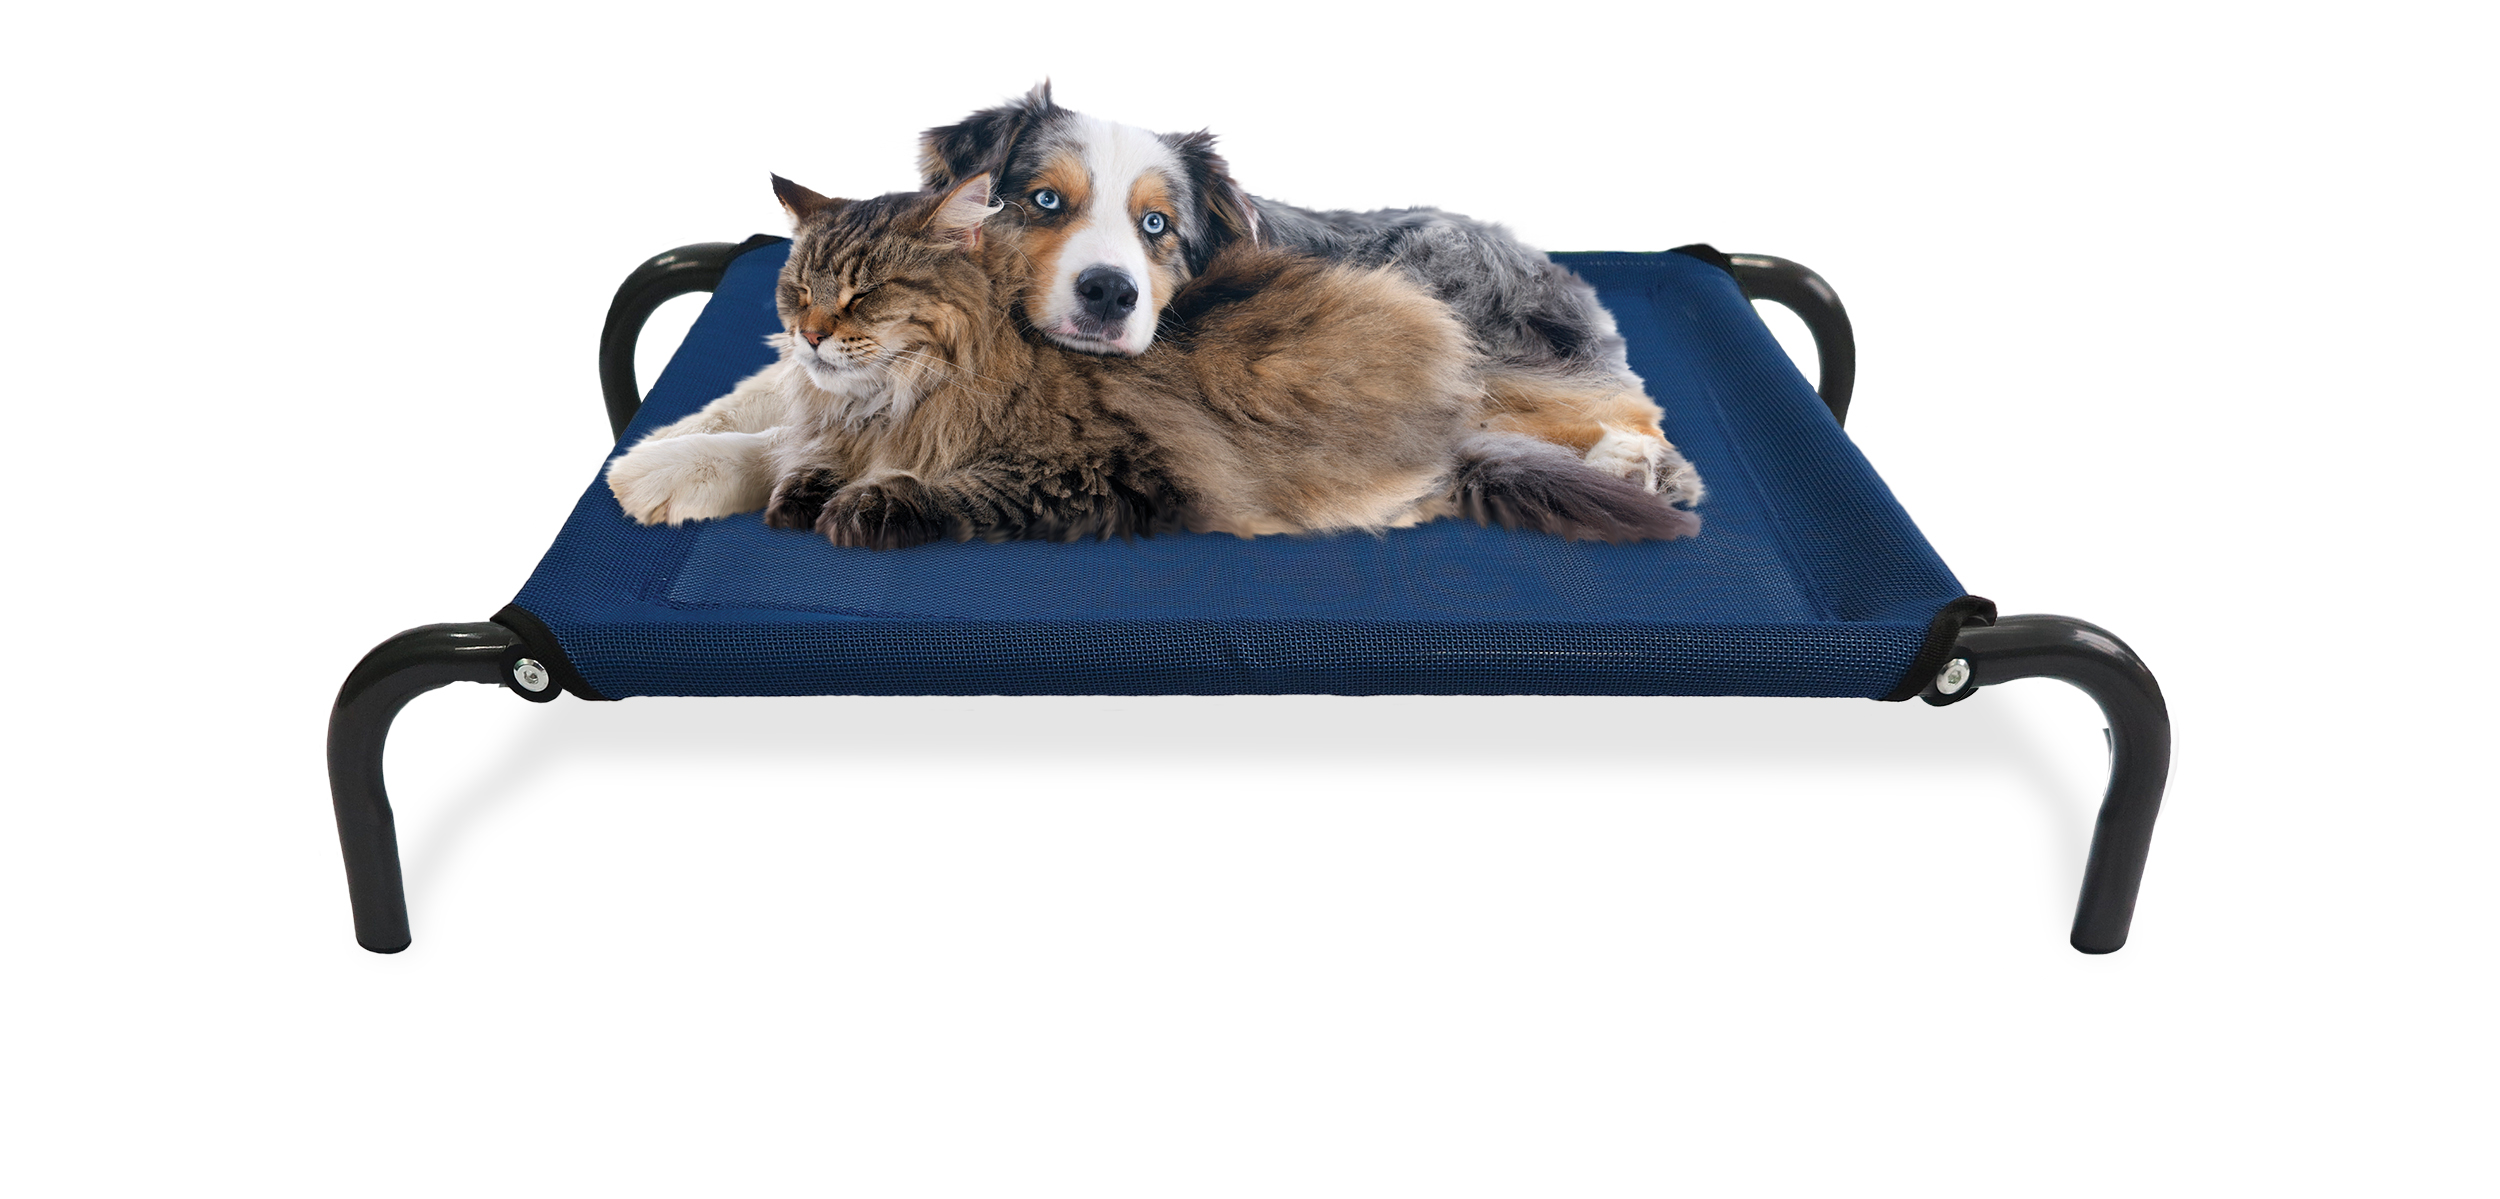 Furhaven Dog Bed Replacement Cover